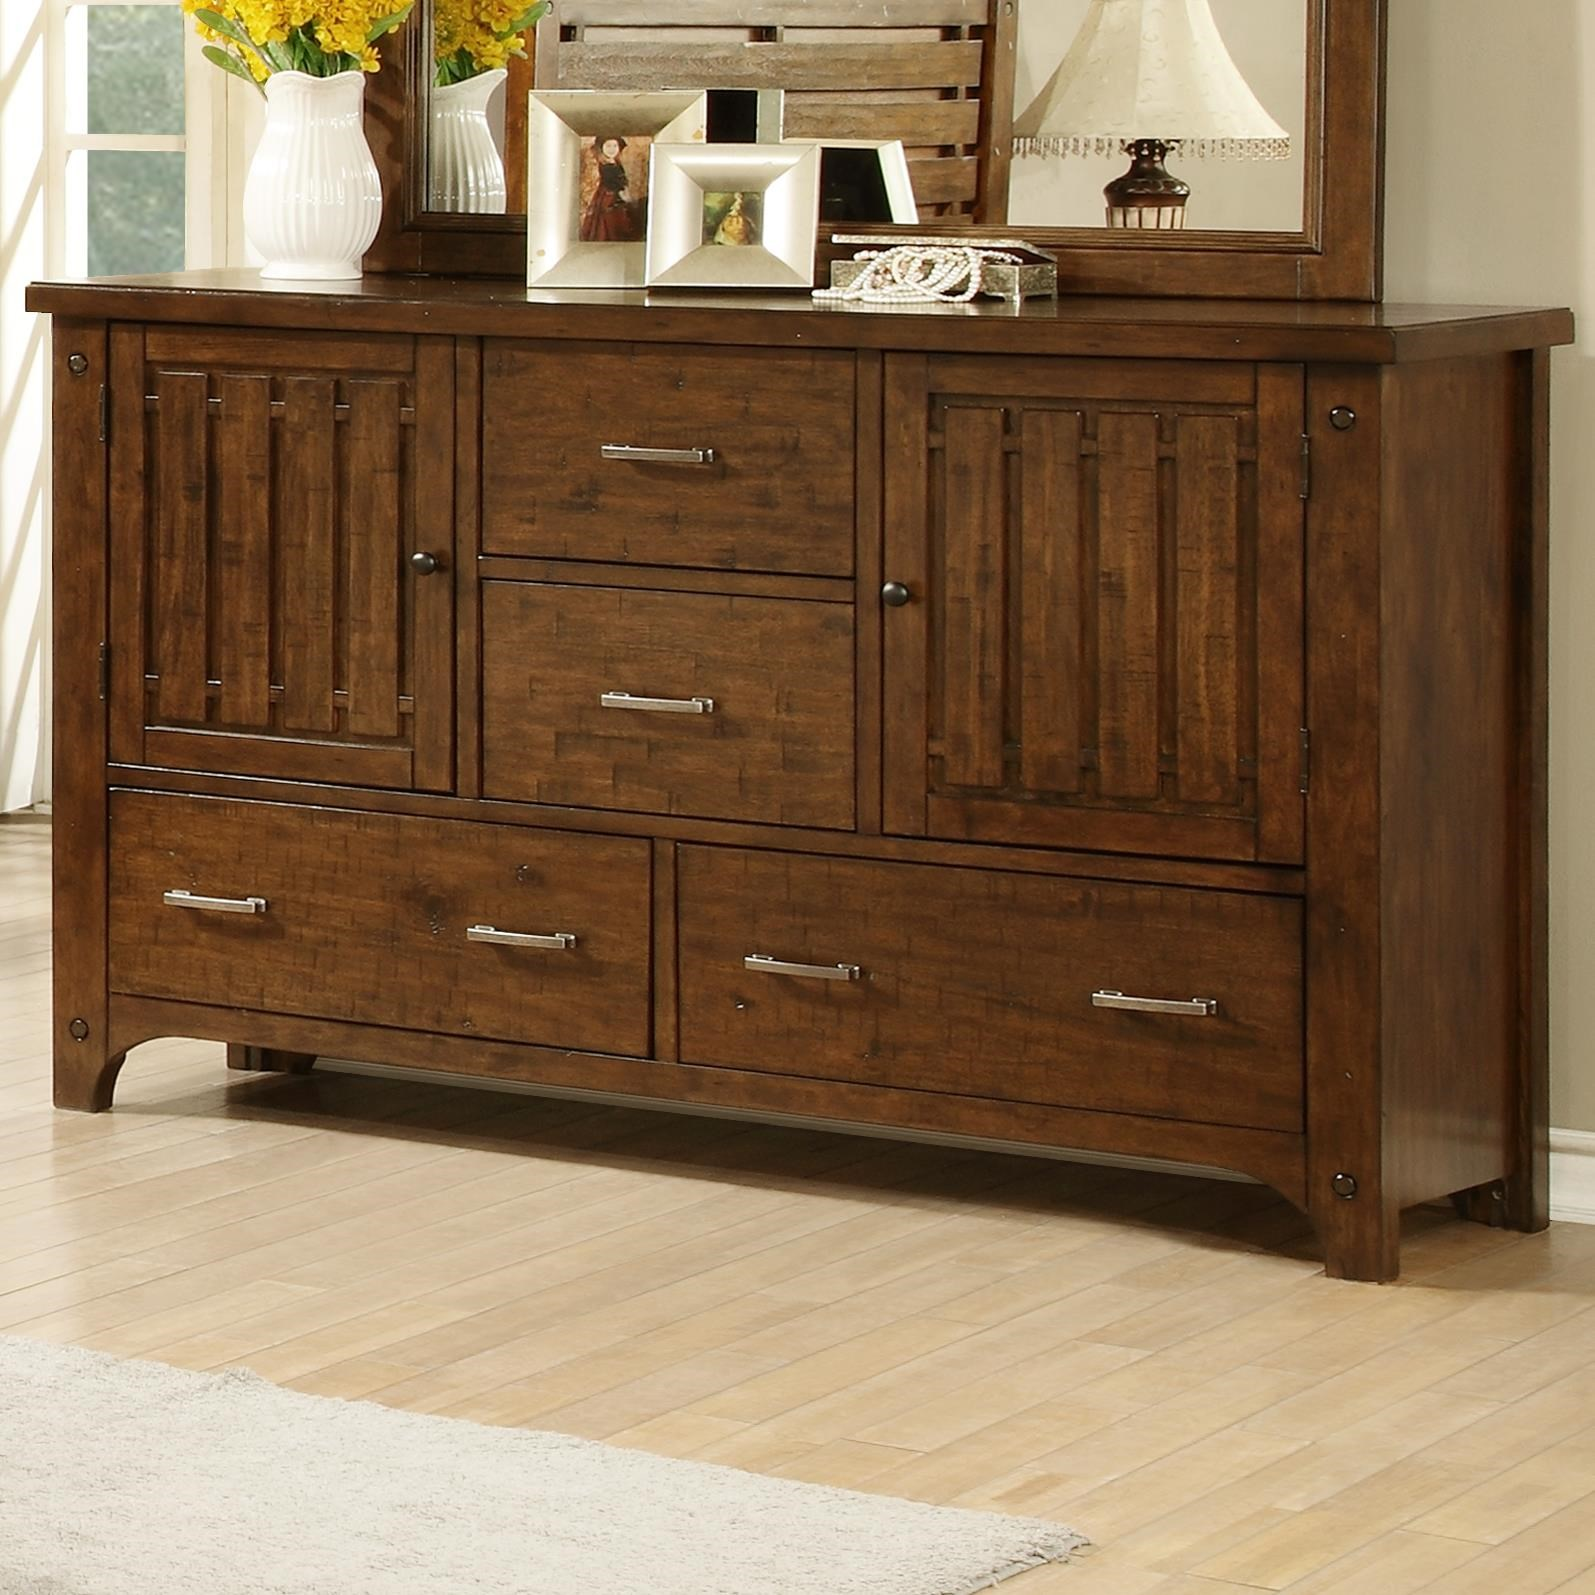 Holland House Mustang Slat Drawer Dresser with 2 Doors